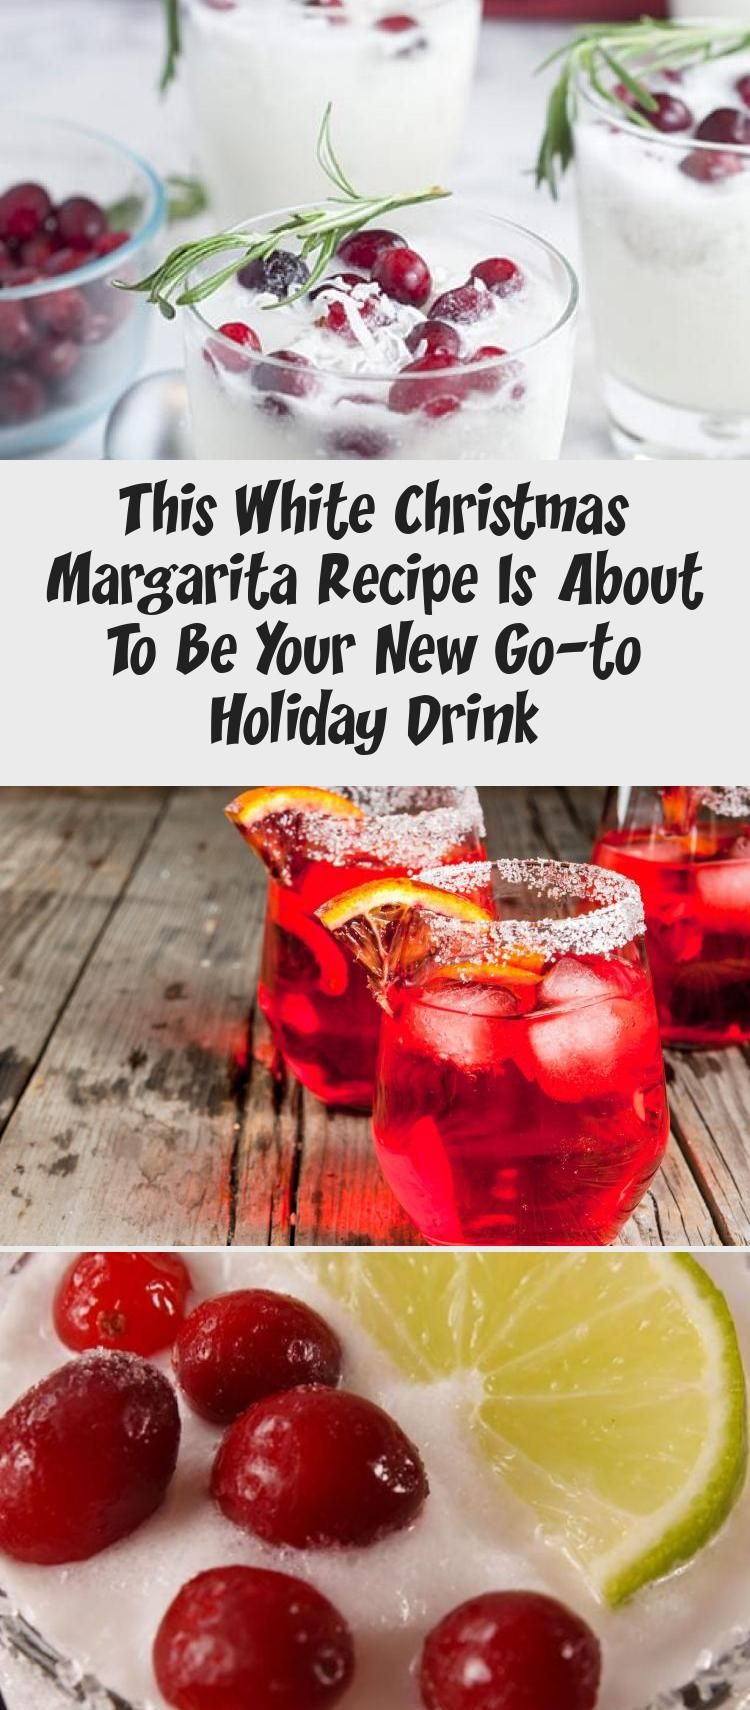 This White Christmas Margarita Recipe Is About To Be Your New Go-to Holiday Drink #christmasmargarita